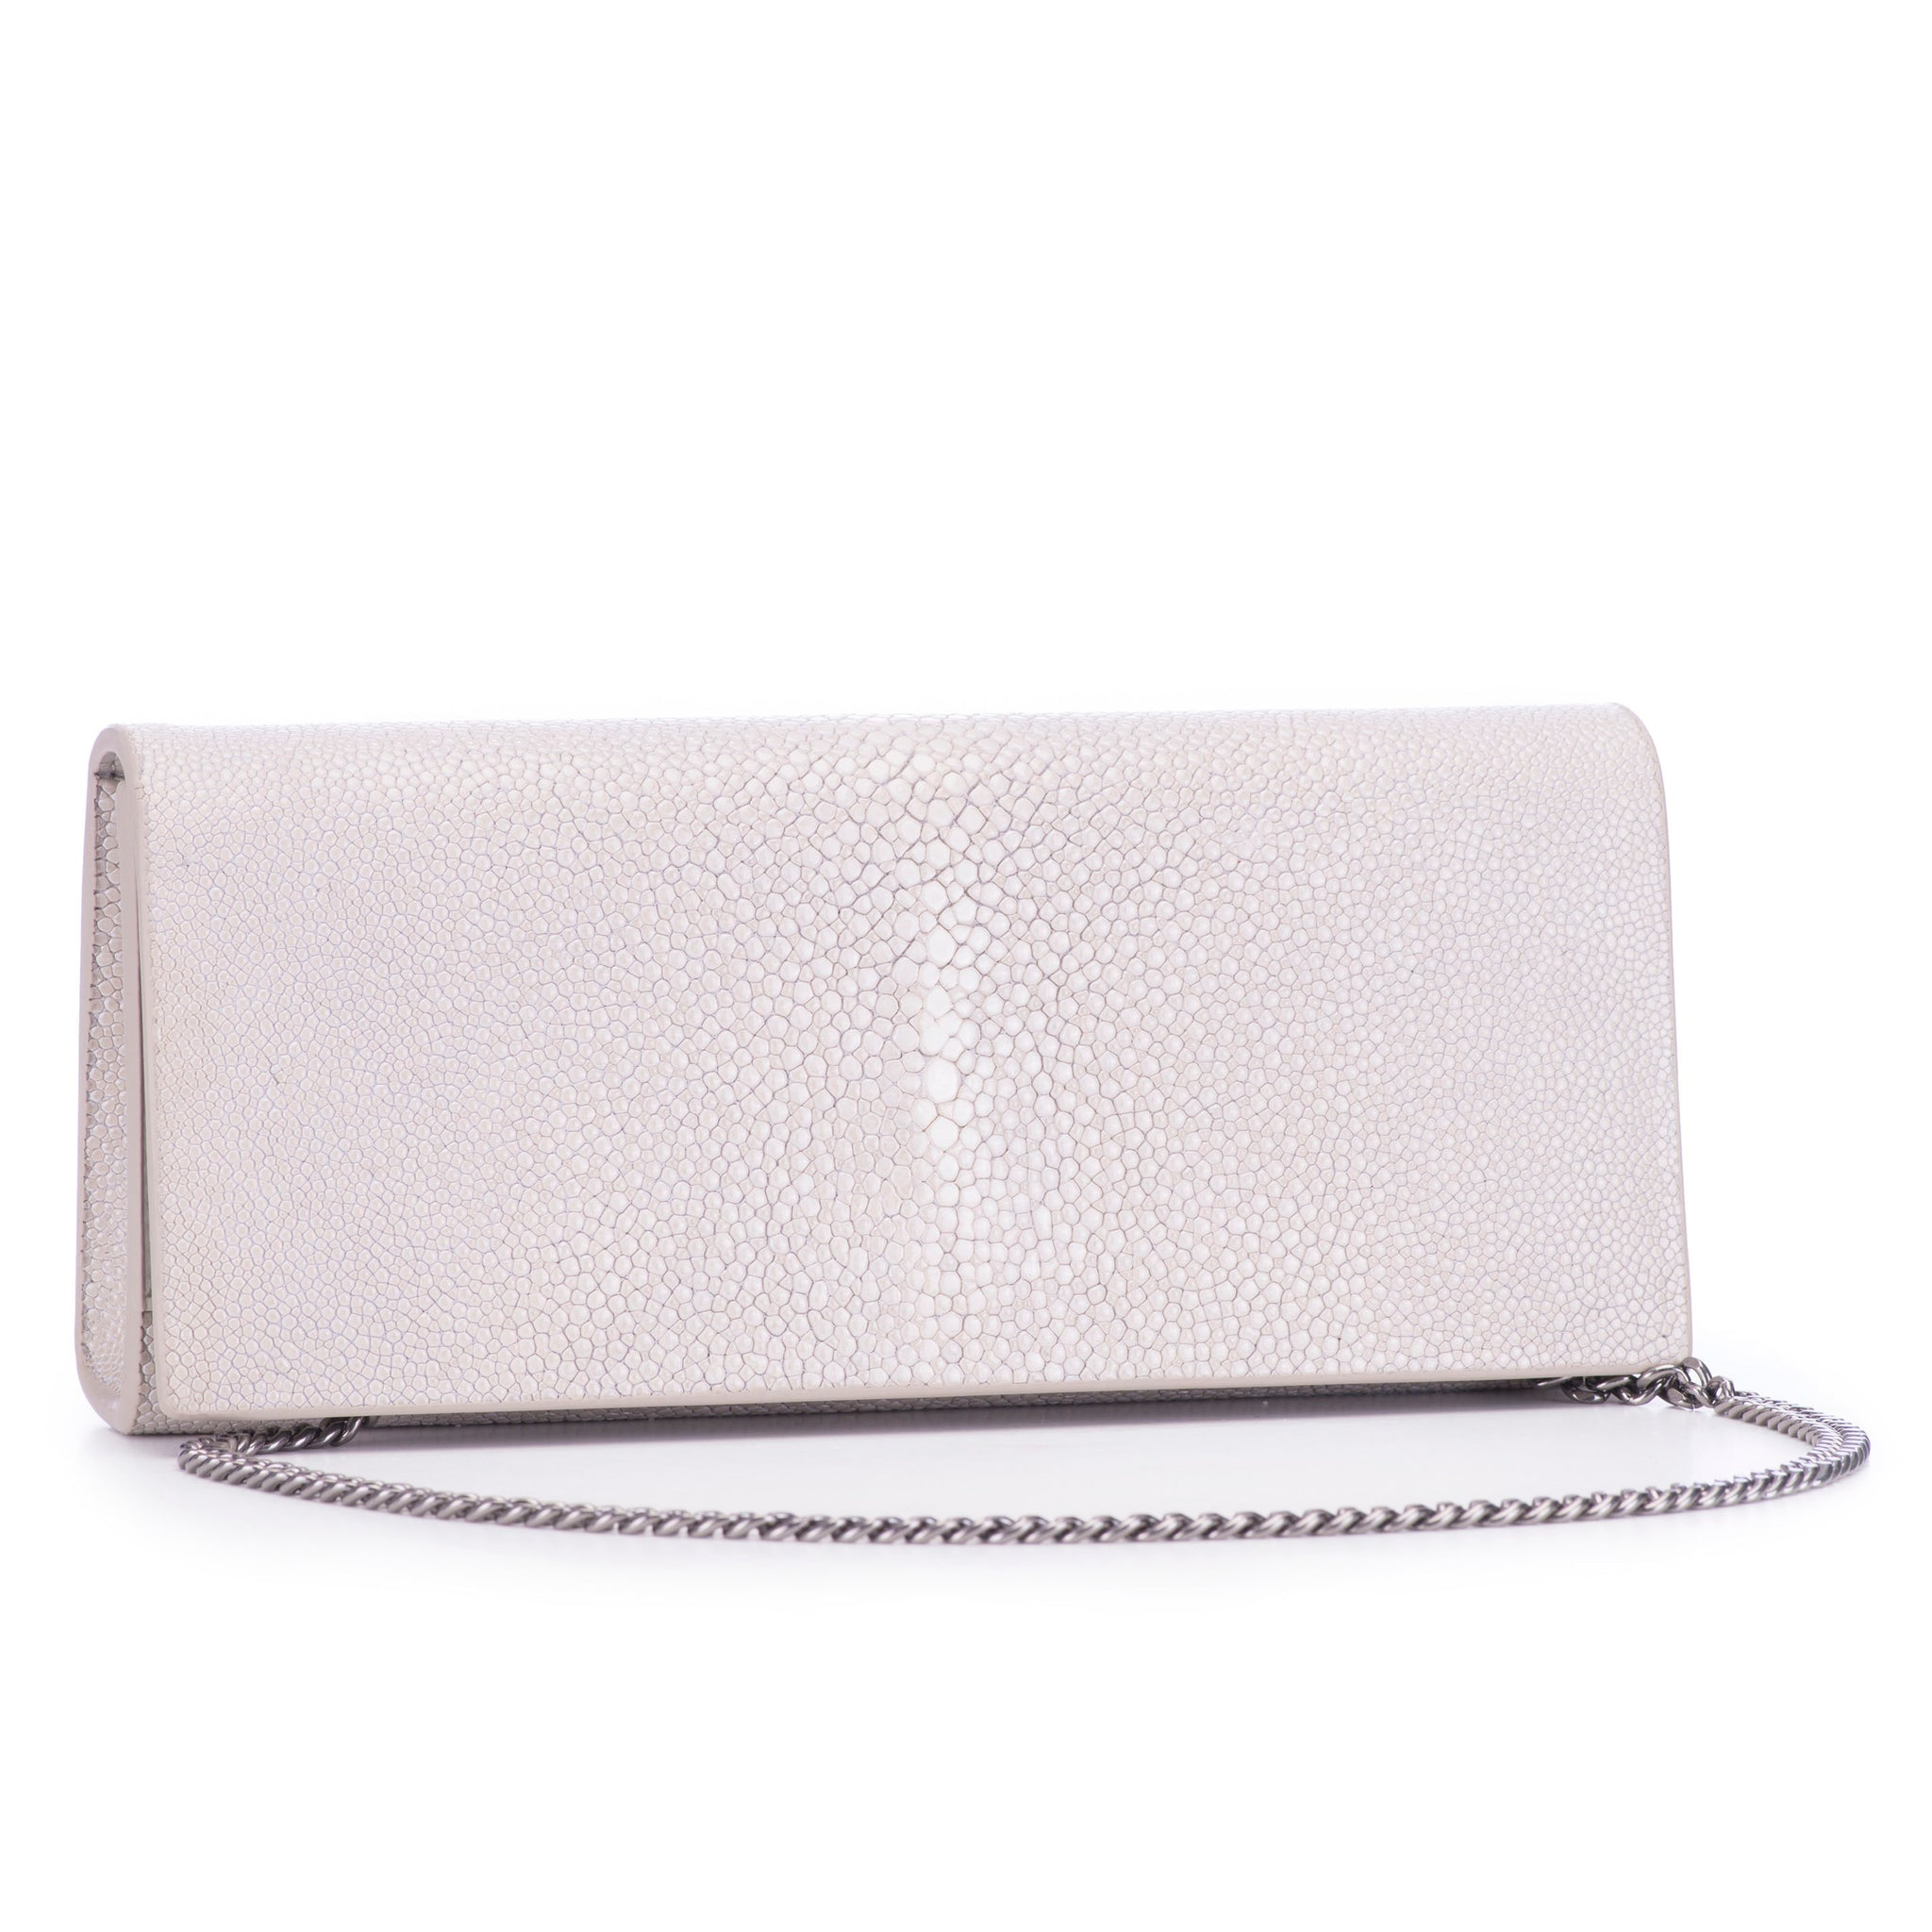 Fog Shagreen Clutch Bag Front View With Chain Cleo - Vivo Direct